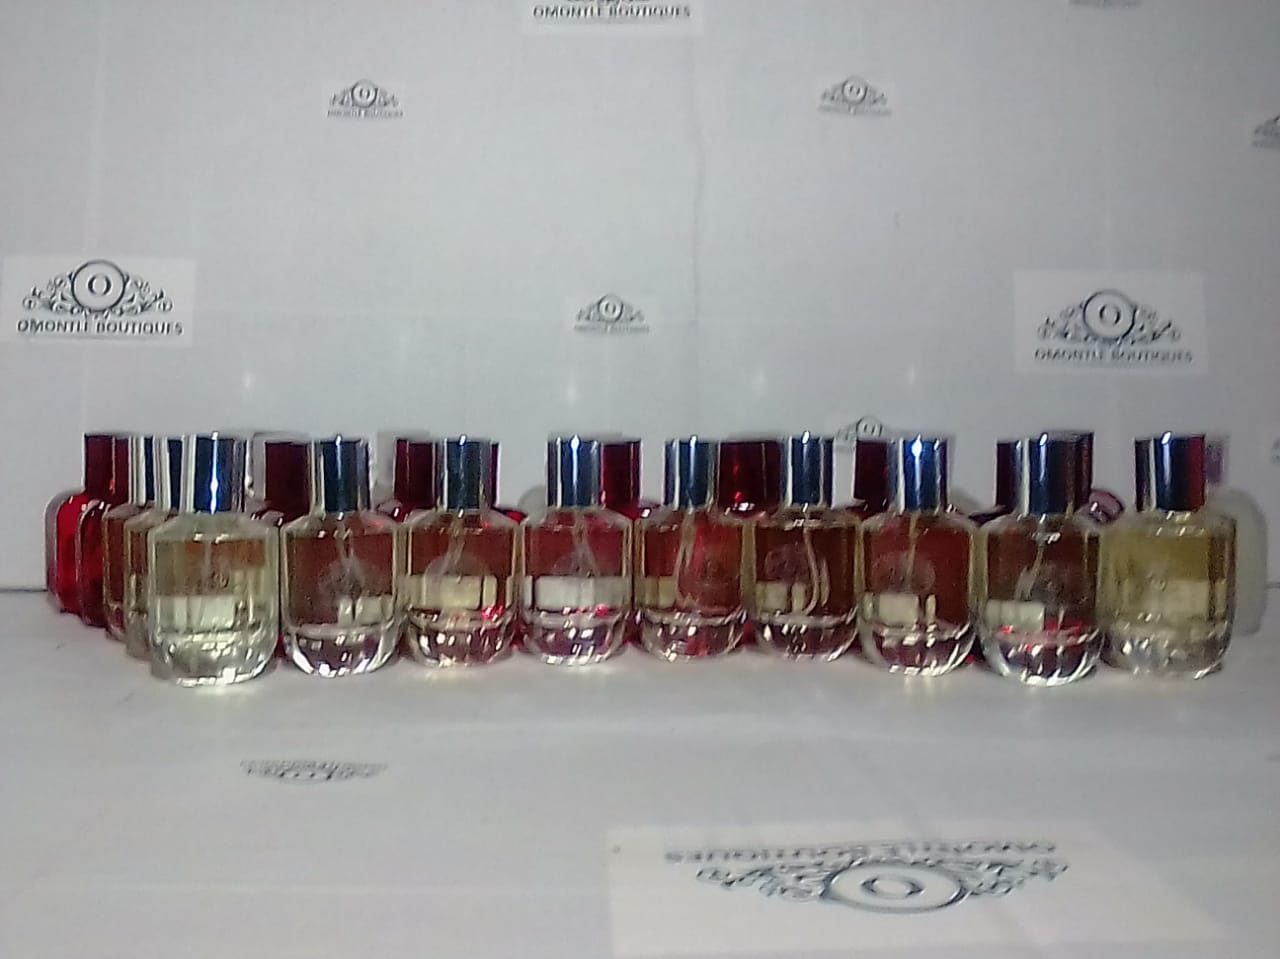 LEARN TO MAKE OIL BASED PERFUMES ANF GET A FREE STARTER KIT TO KICK STARTYOUR BUSINESS